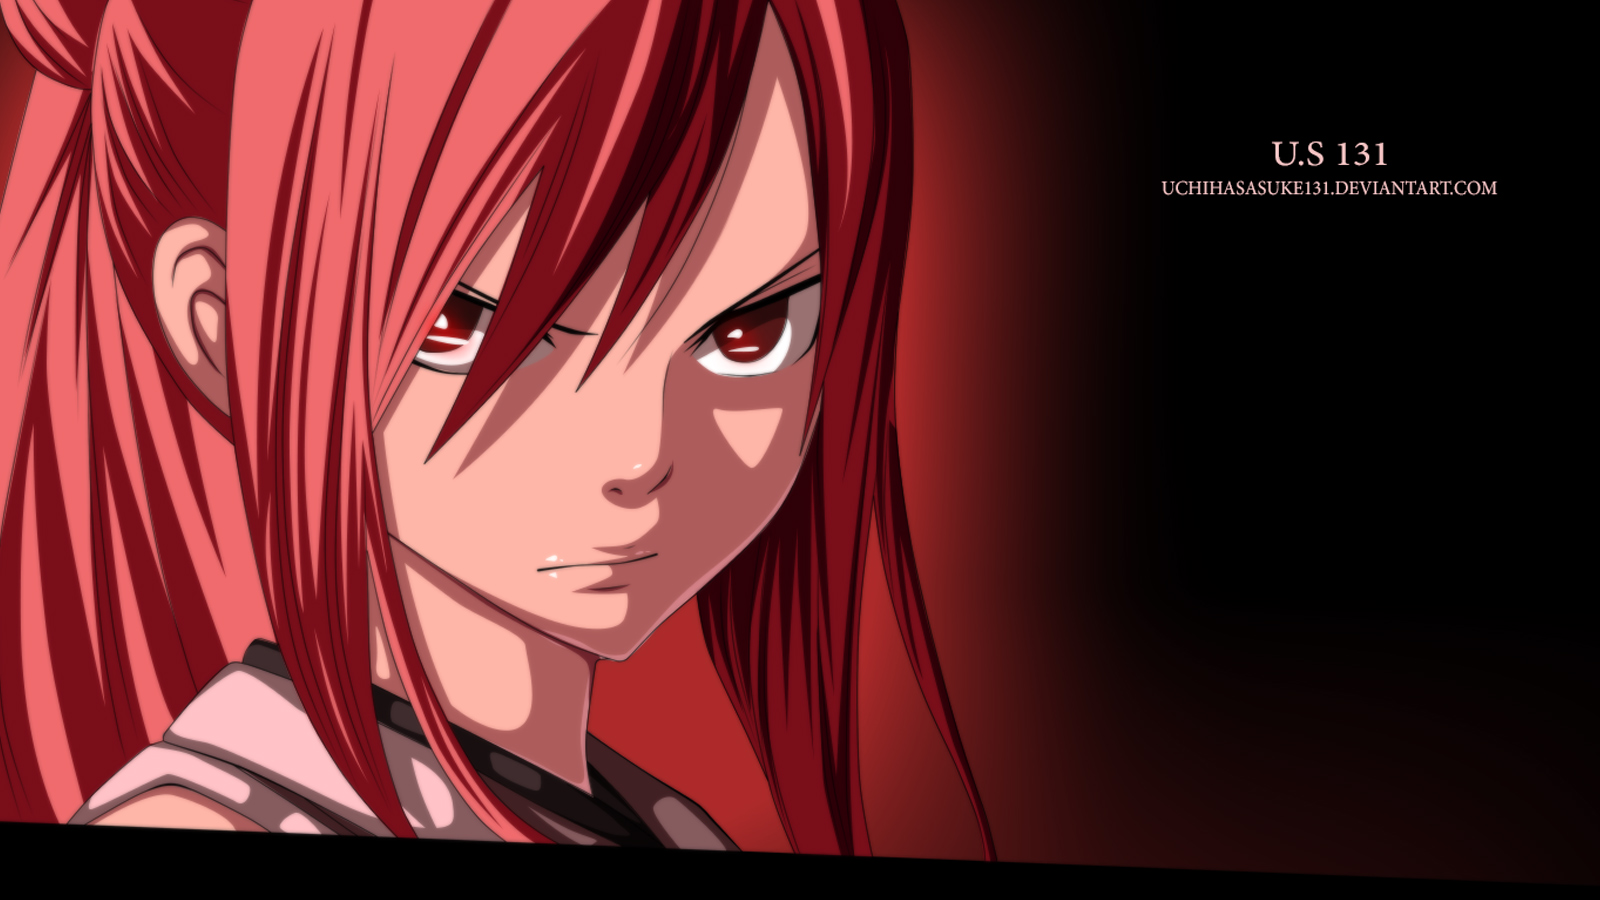 erza scarlet fairy tail girl anime hd wallpaper full resolution 1600x900